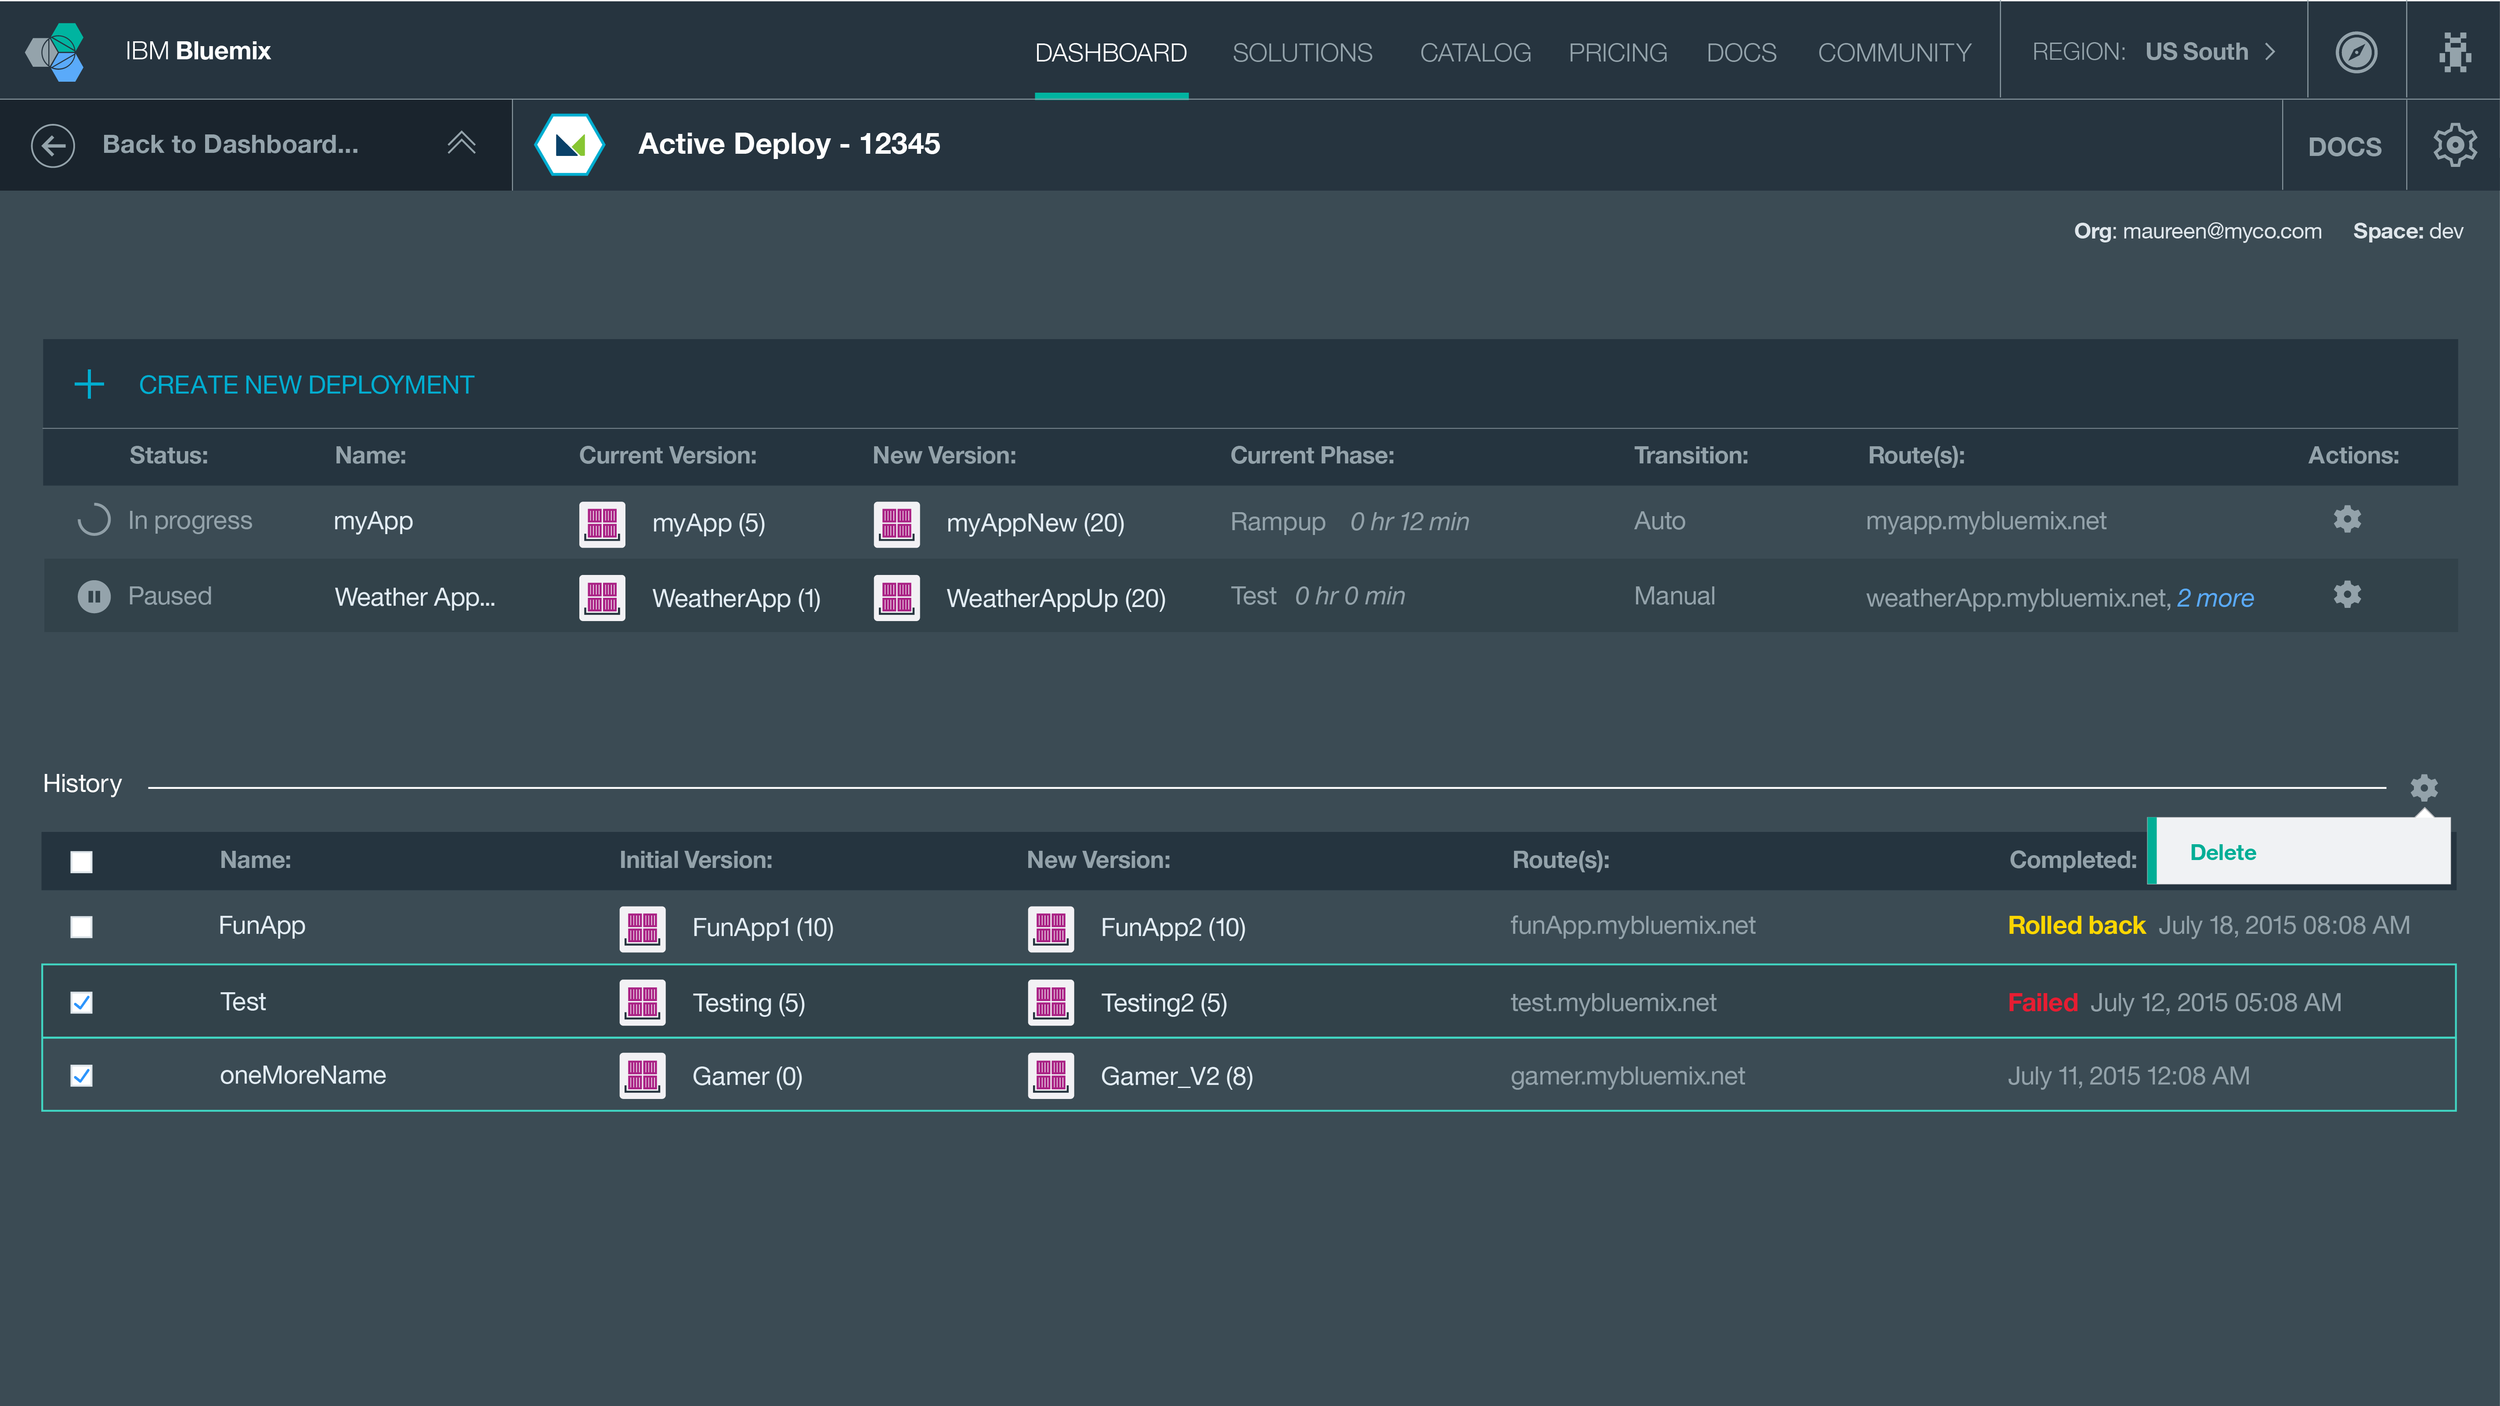 ^ Users can see all of their deployments here. They can elect to delete any deployments from their history when no longer needed.